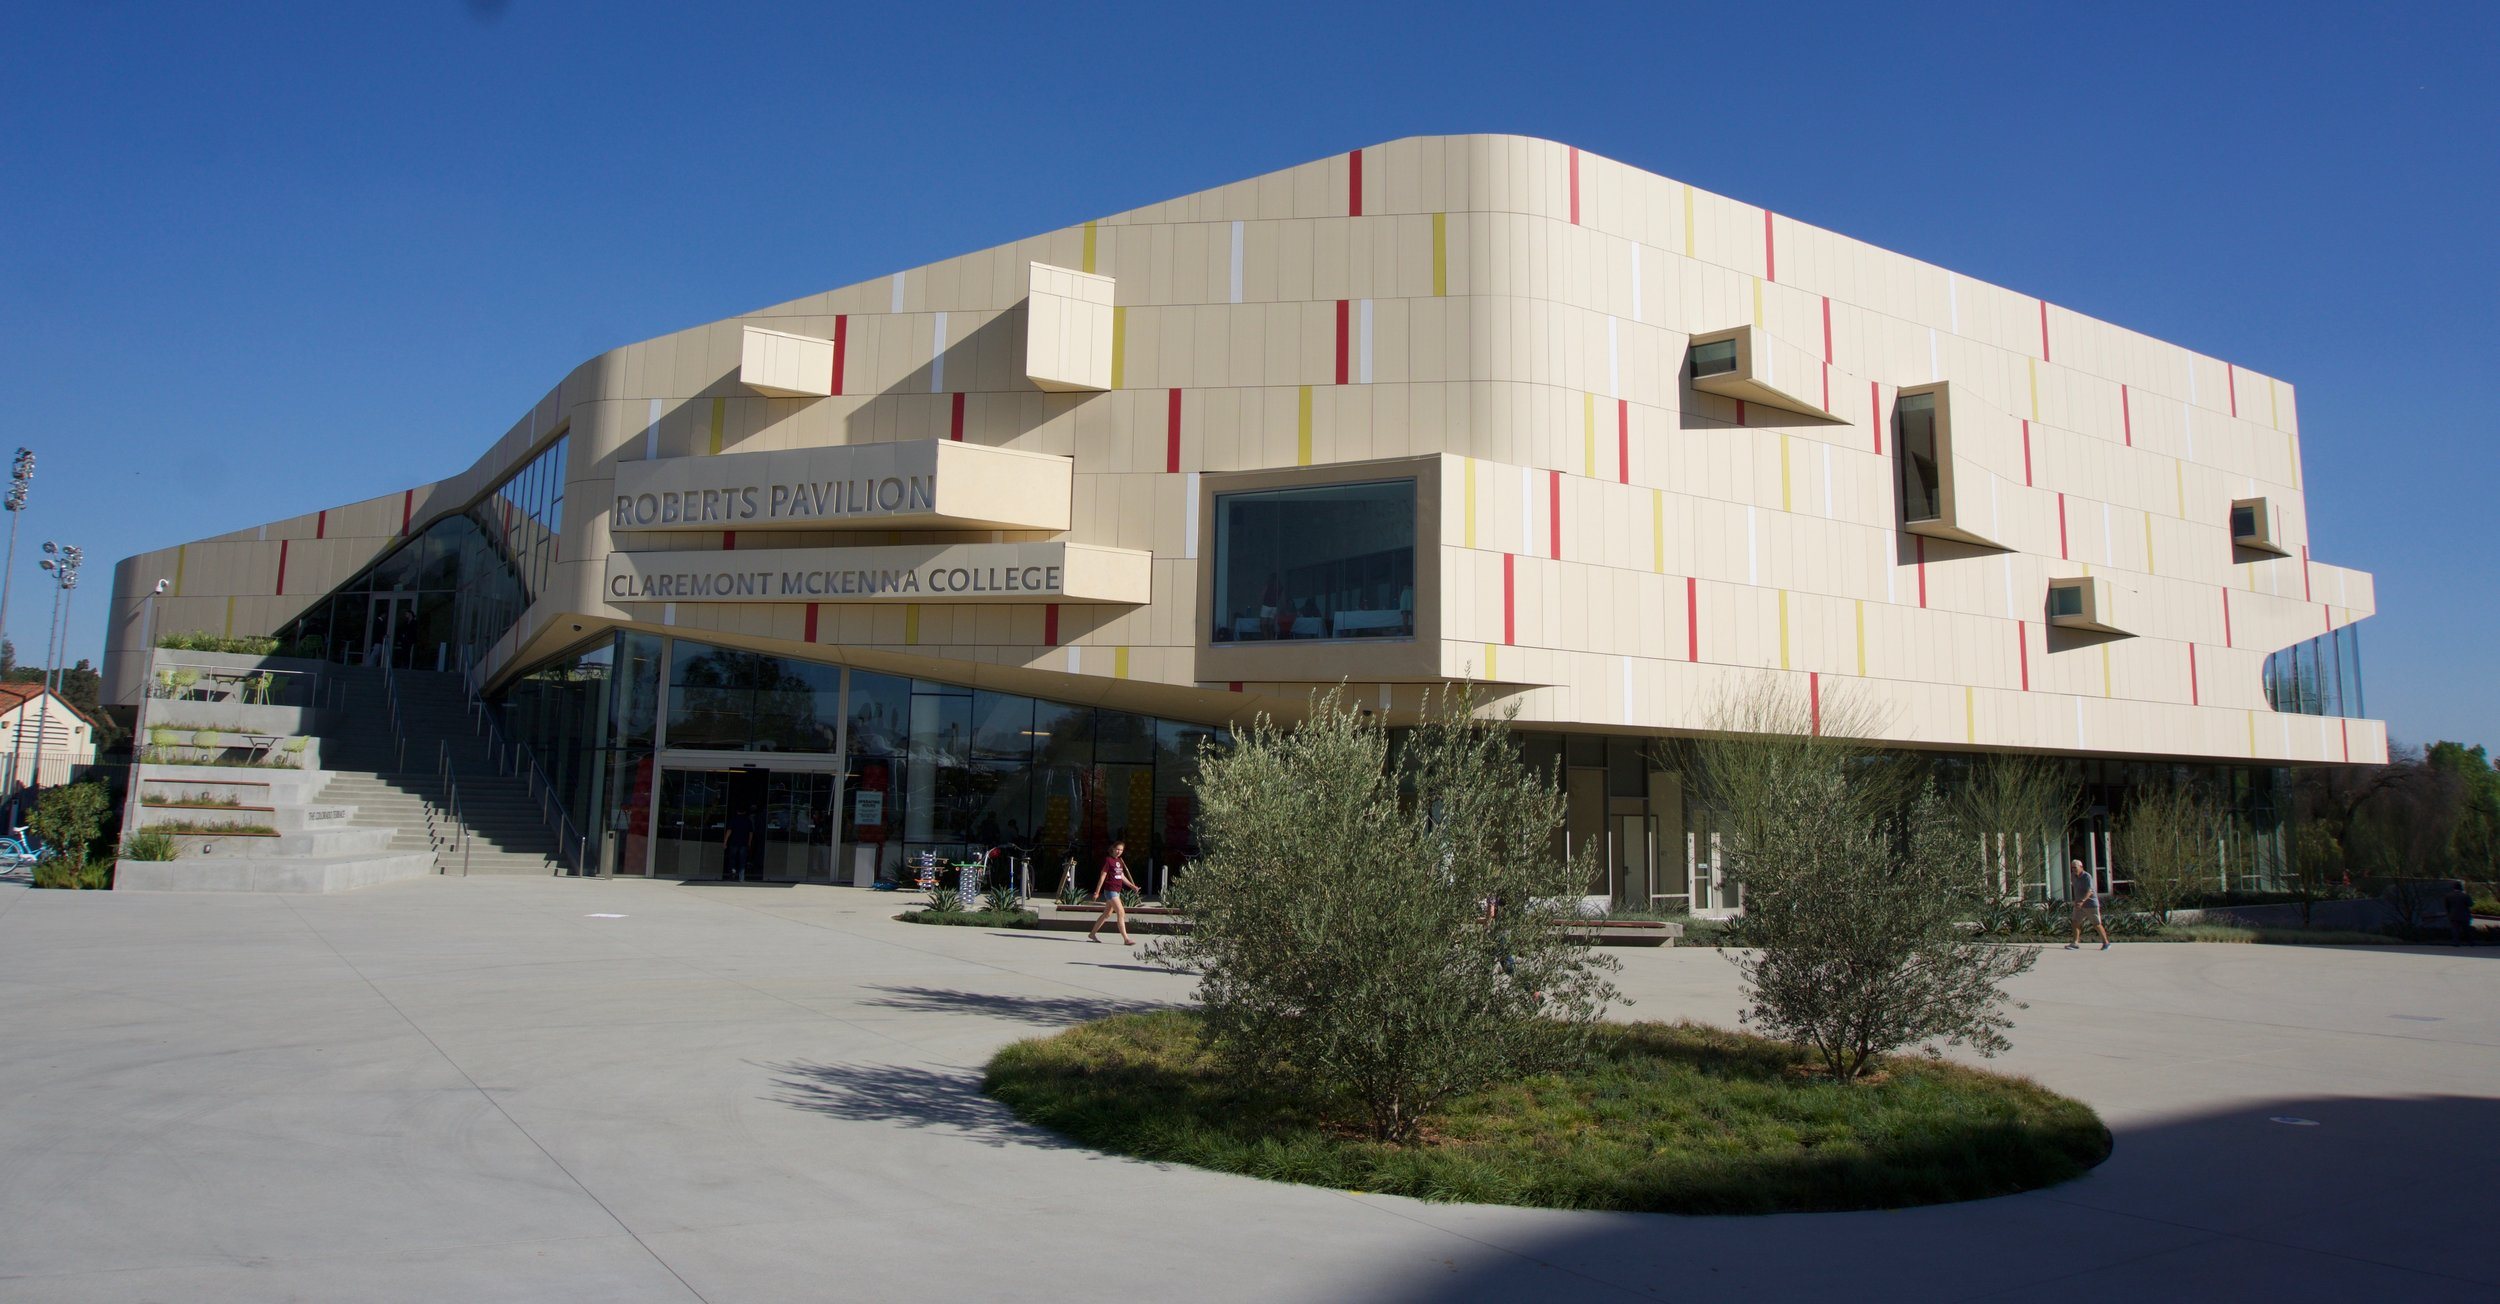 Roberts Pavilion: The History, Funding, and Focus of CMC's